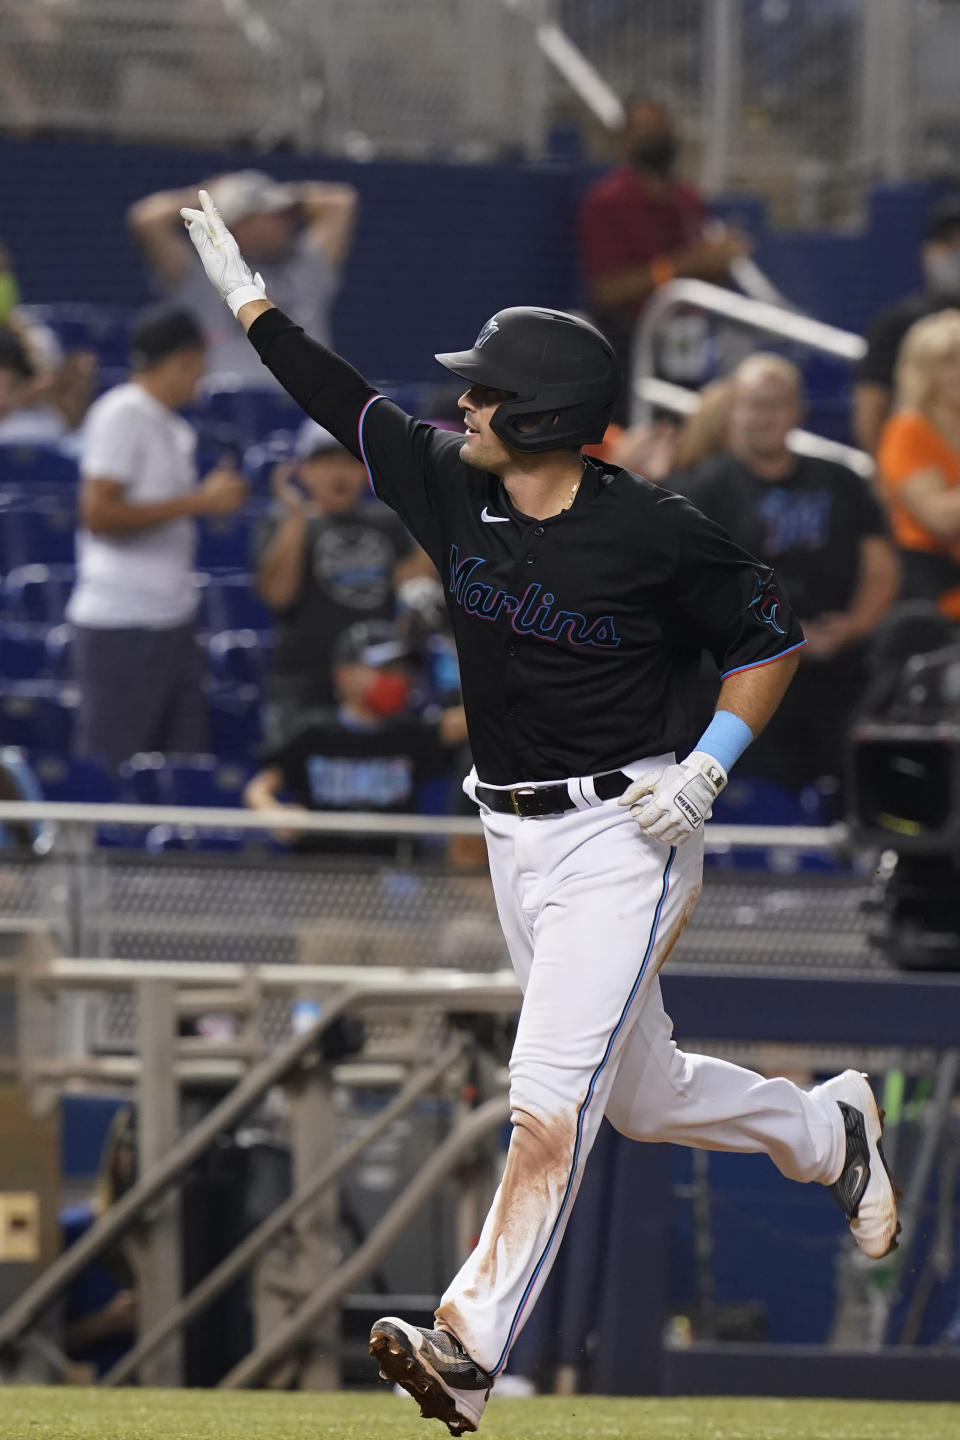 Miami Marlins Nick Fortes raises his hand to the crowd after hitting a two-run home run during the fifth inning of the team's baseball game against the Pittsburgh Pirates, Saturday, Sept. 18, 2021, in Miami. (AP Photo/Marta Lavandier)